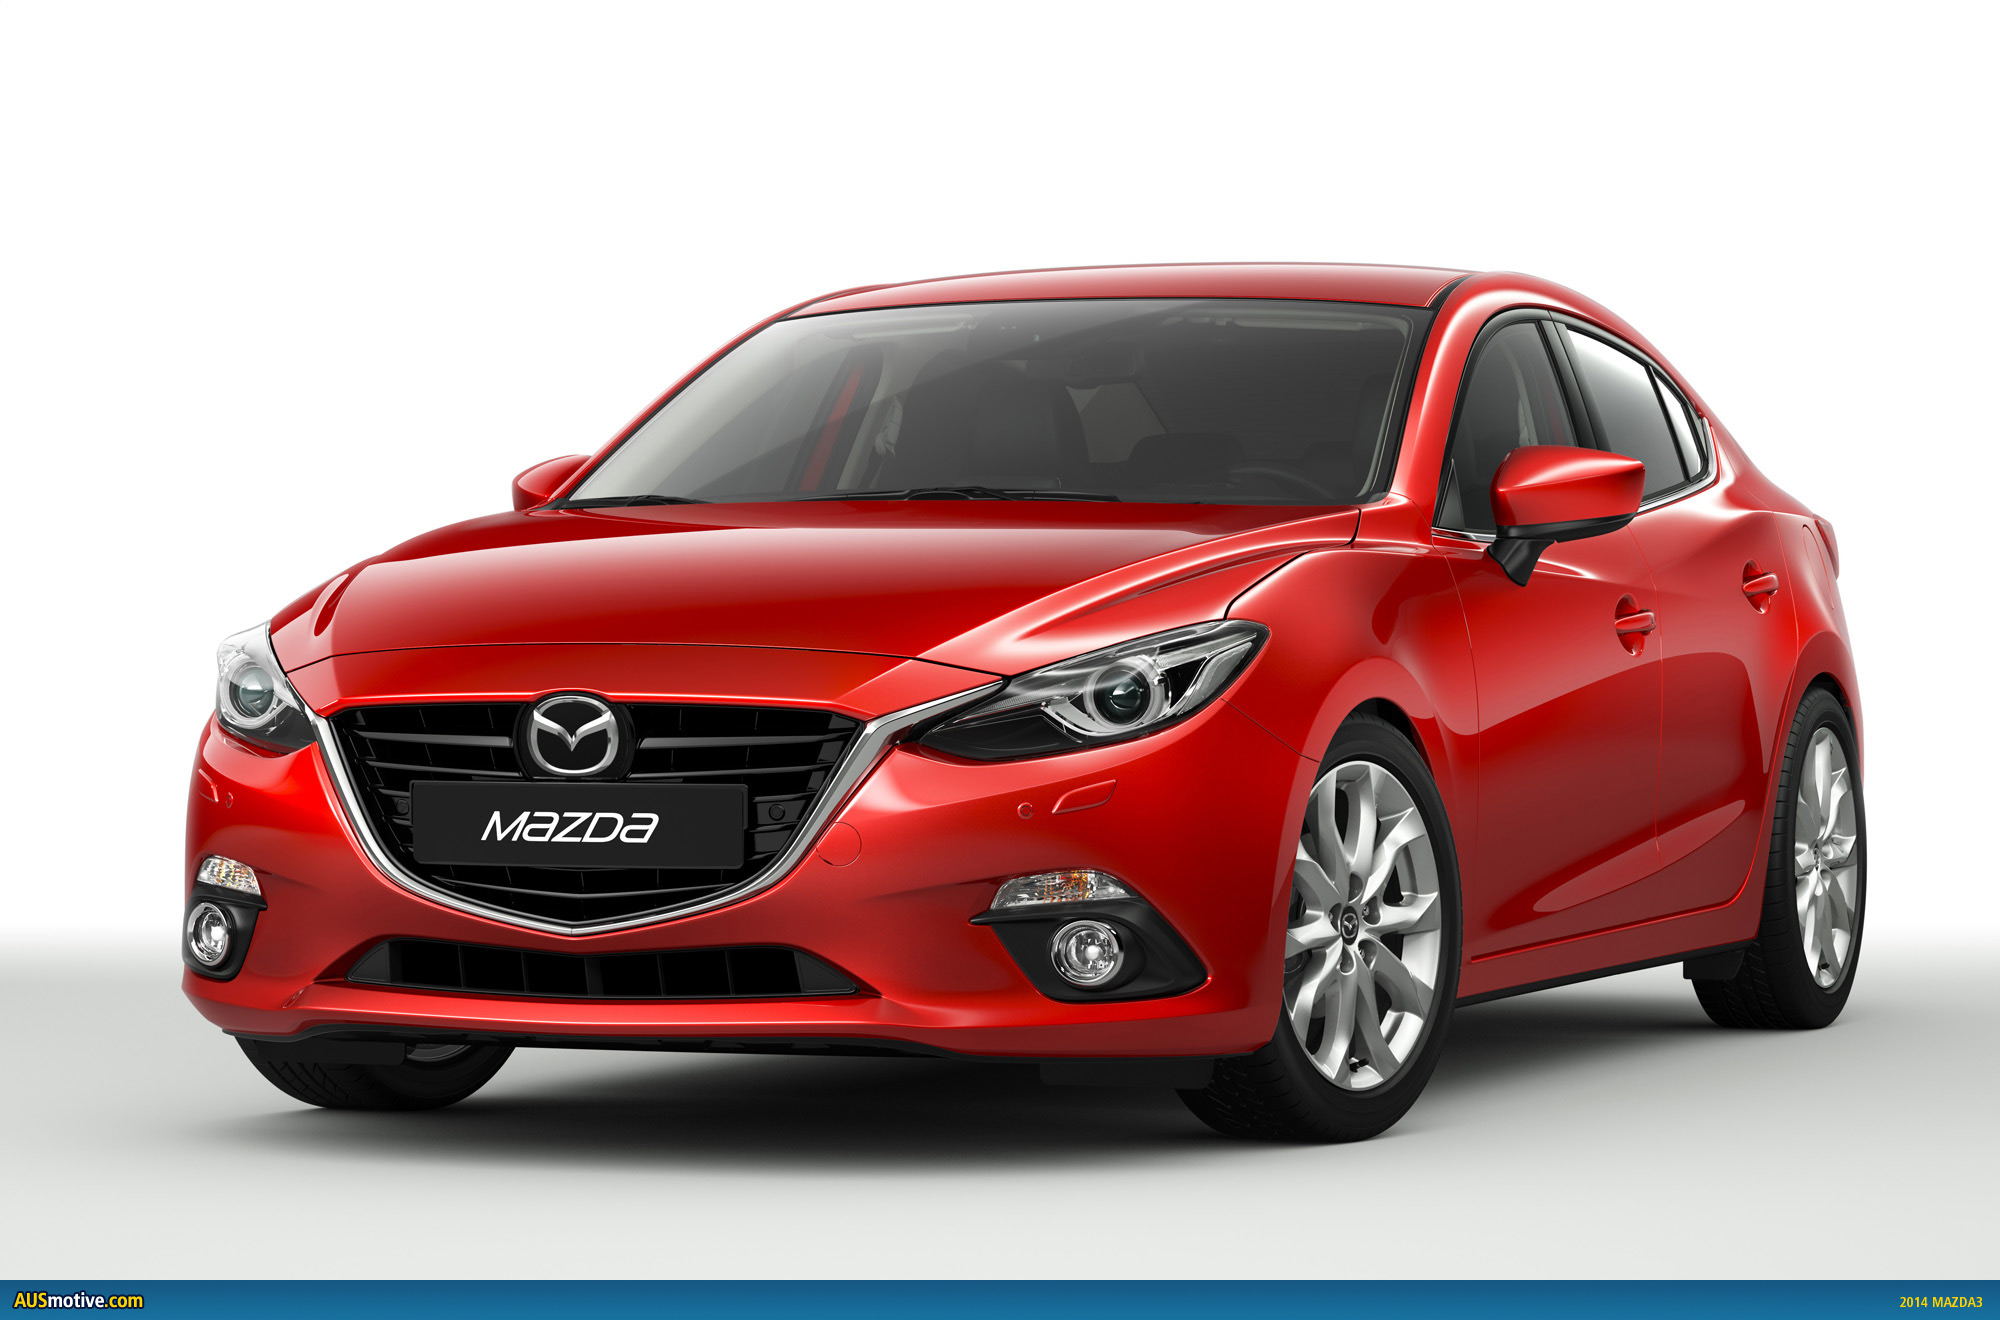 AUSmotive.com » 2014 Mazda3 in detail